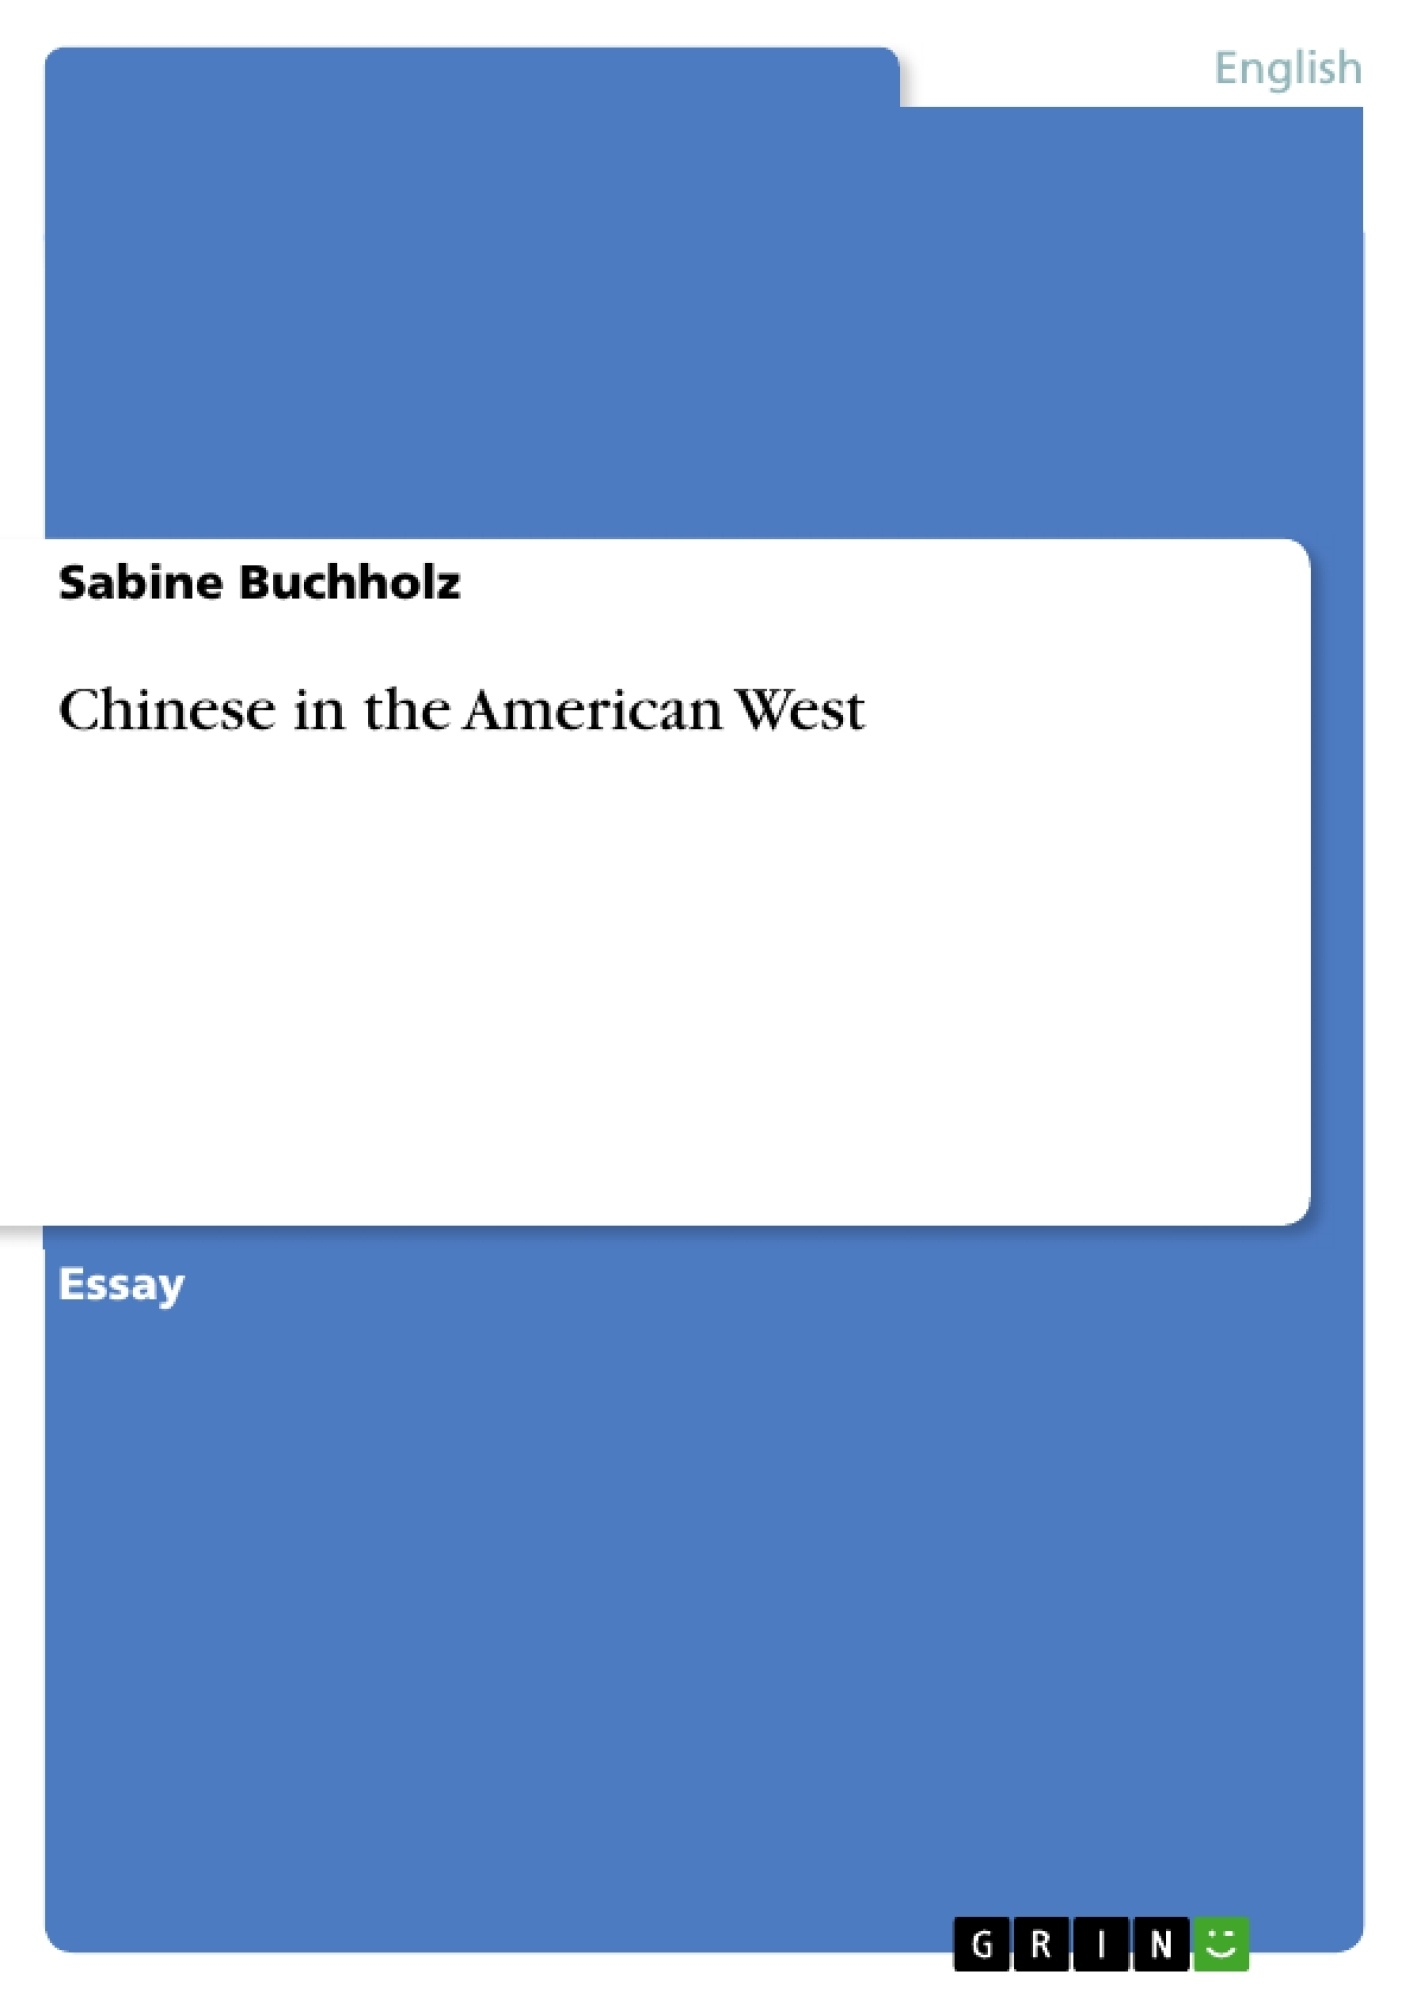 Title: Chinese in the American West